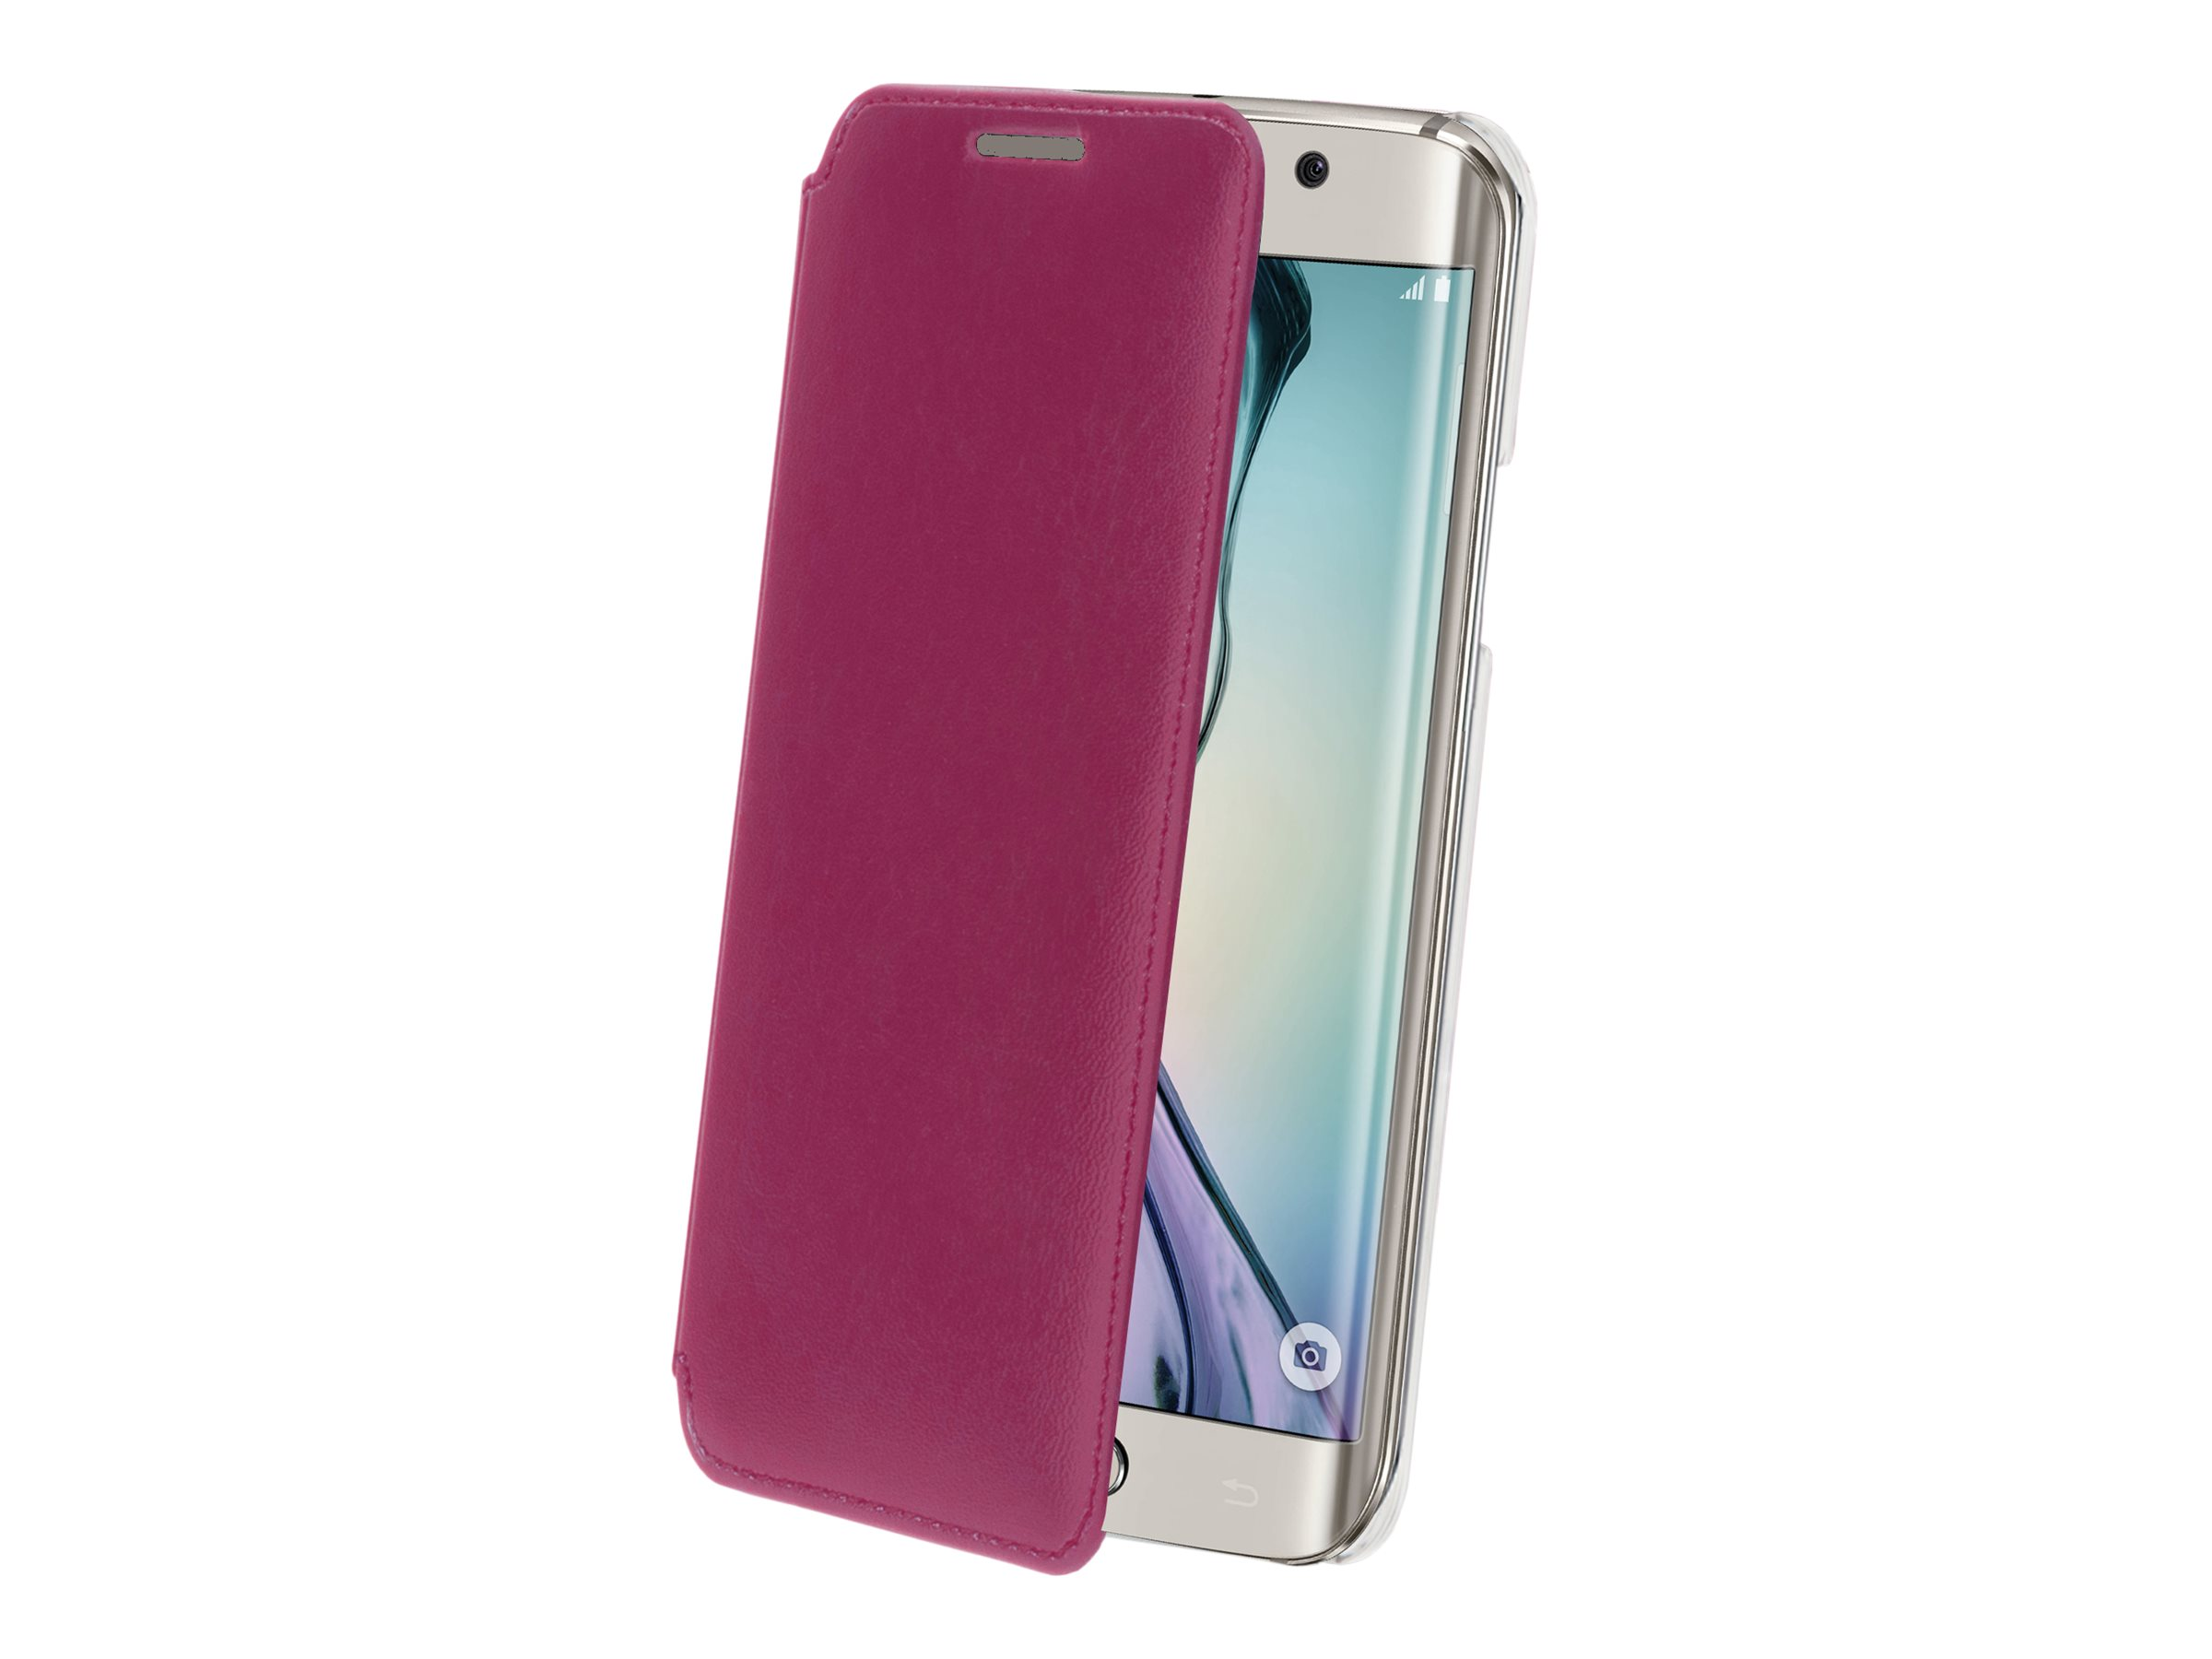 Muvit Made in Paris Crystal Folio - Protection à rabat pour Samsung GALAXY S6 Edge - Fuchsia